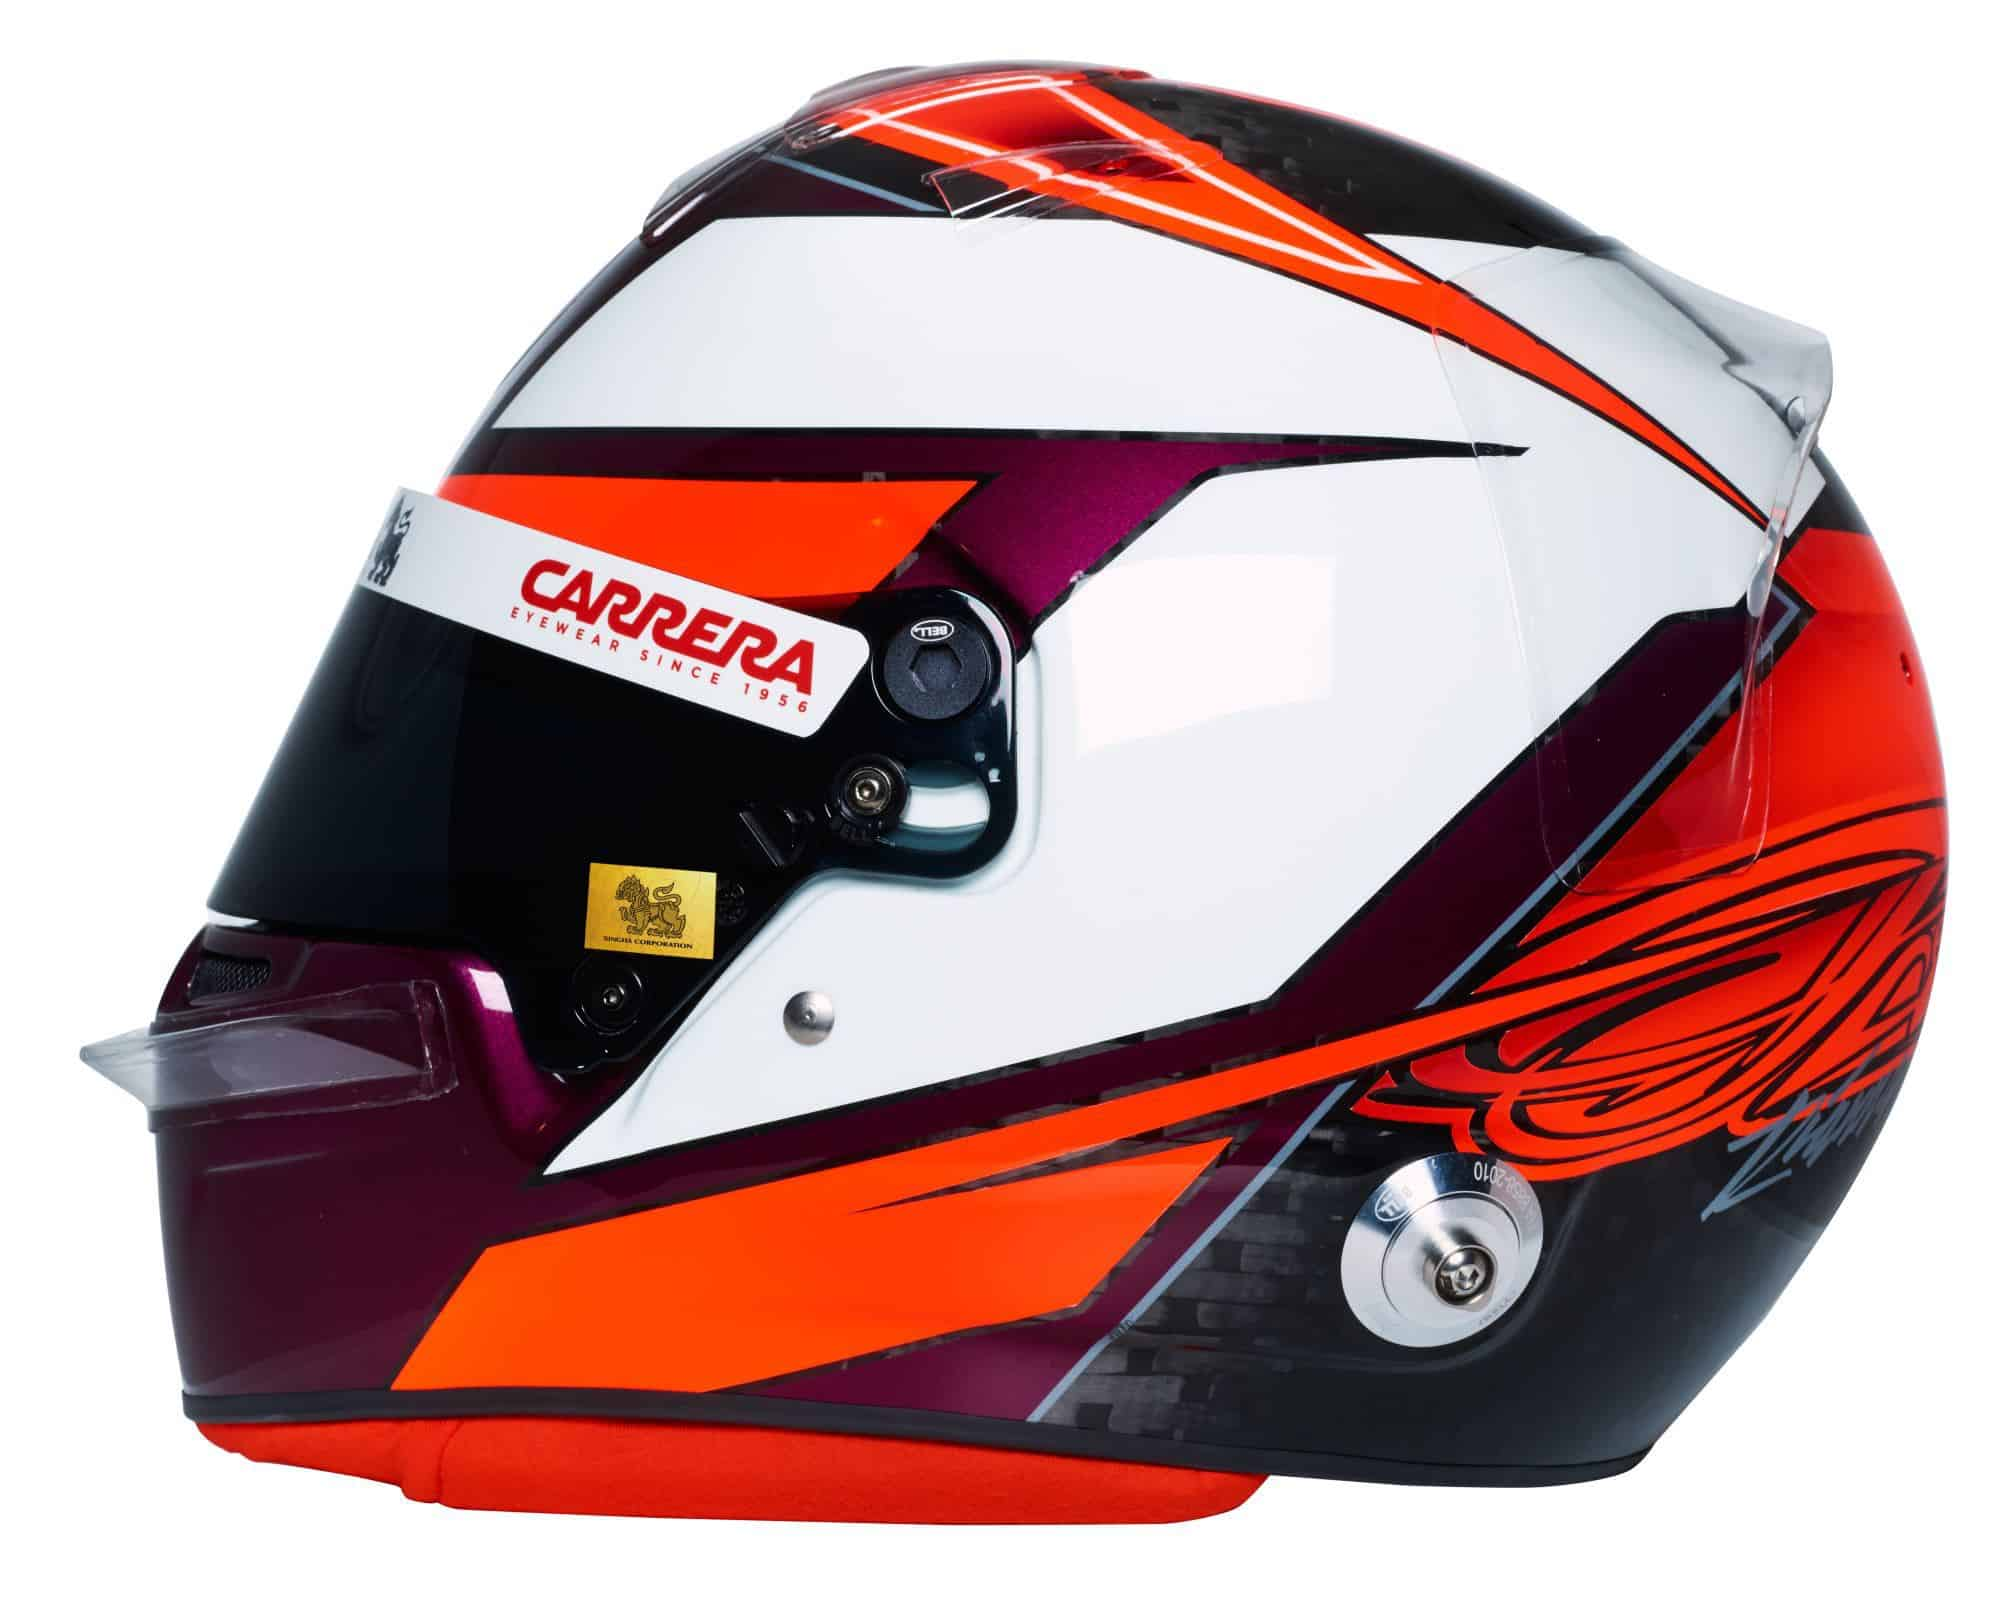 Kimi Raikkonen 2019 F1 helmet Alfa Romeo Racing left side Photo Alfa Romeo Edited by MAXF1net